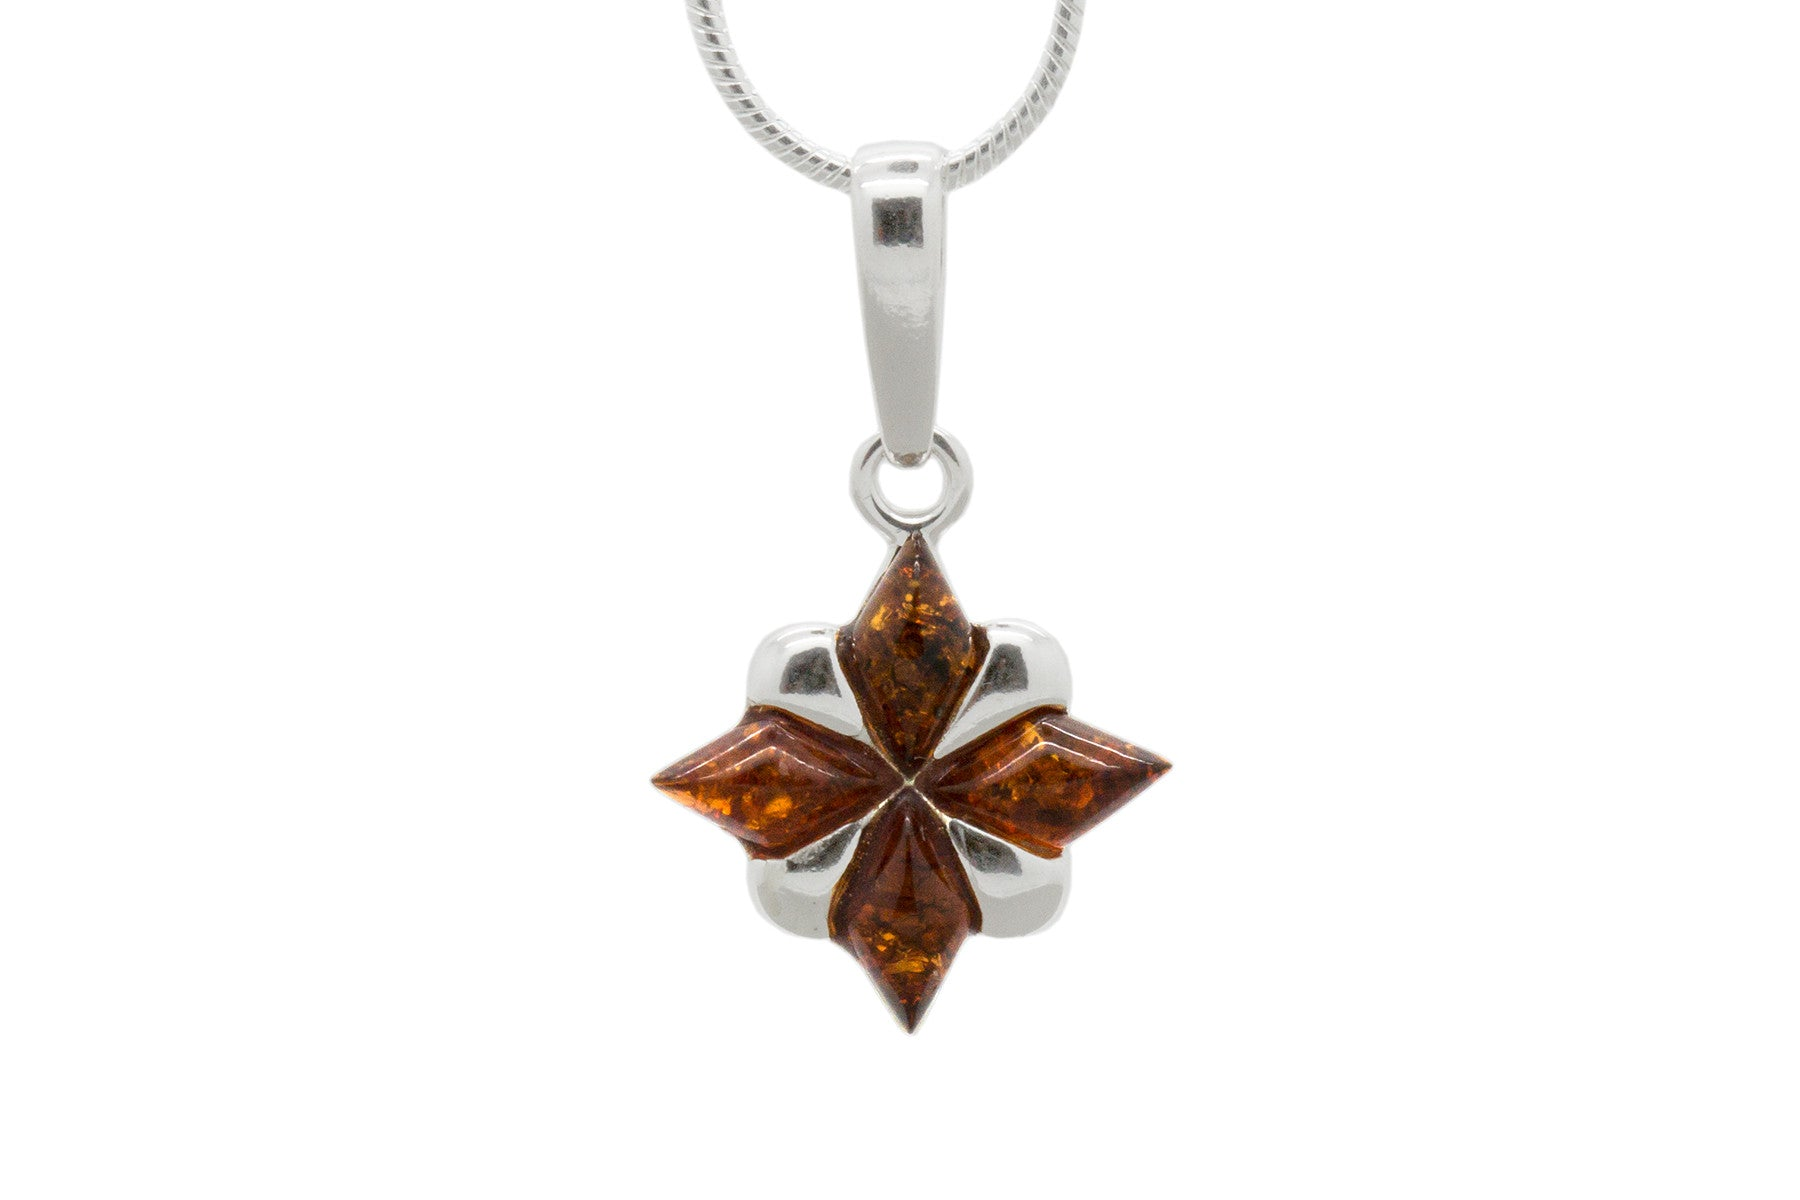 925 sterling silver north star pendant necklace with genuine natural 925 sterling silver north star pendant necklace with genuine natural baltic amber chain included aloadofball Images